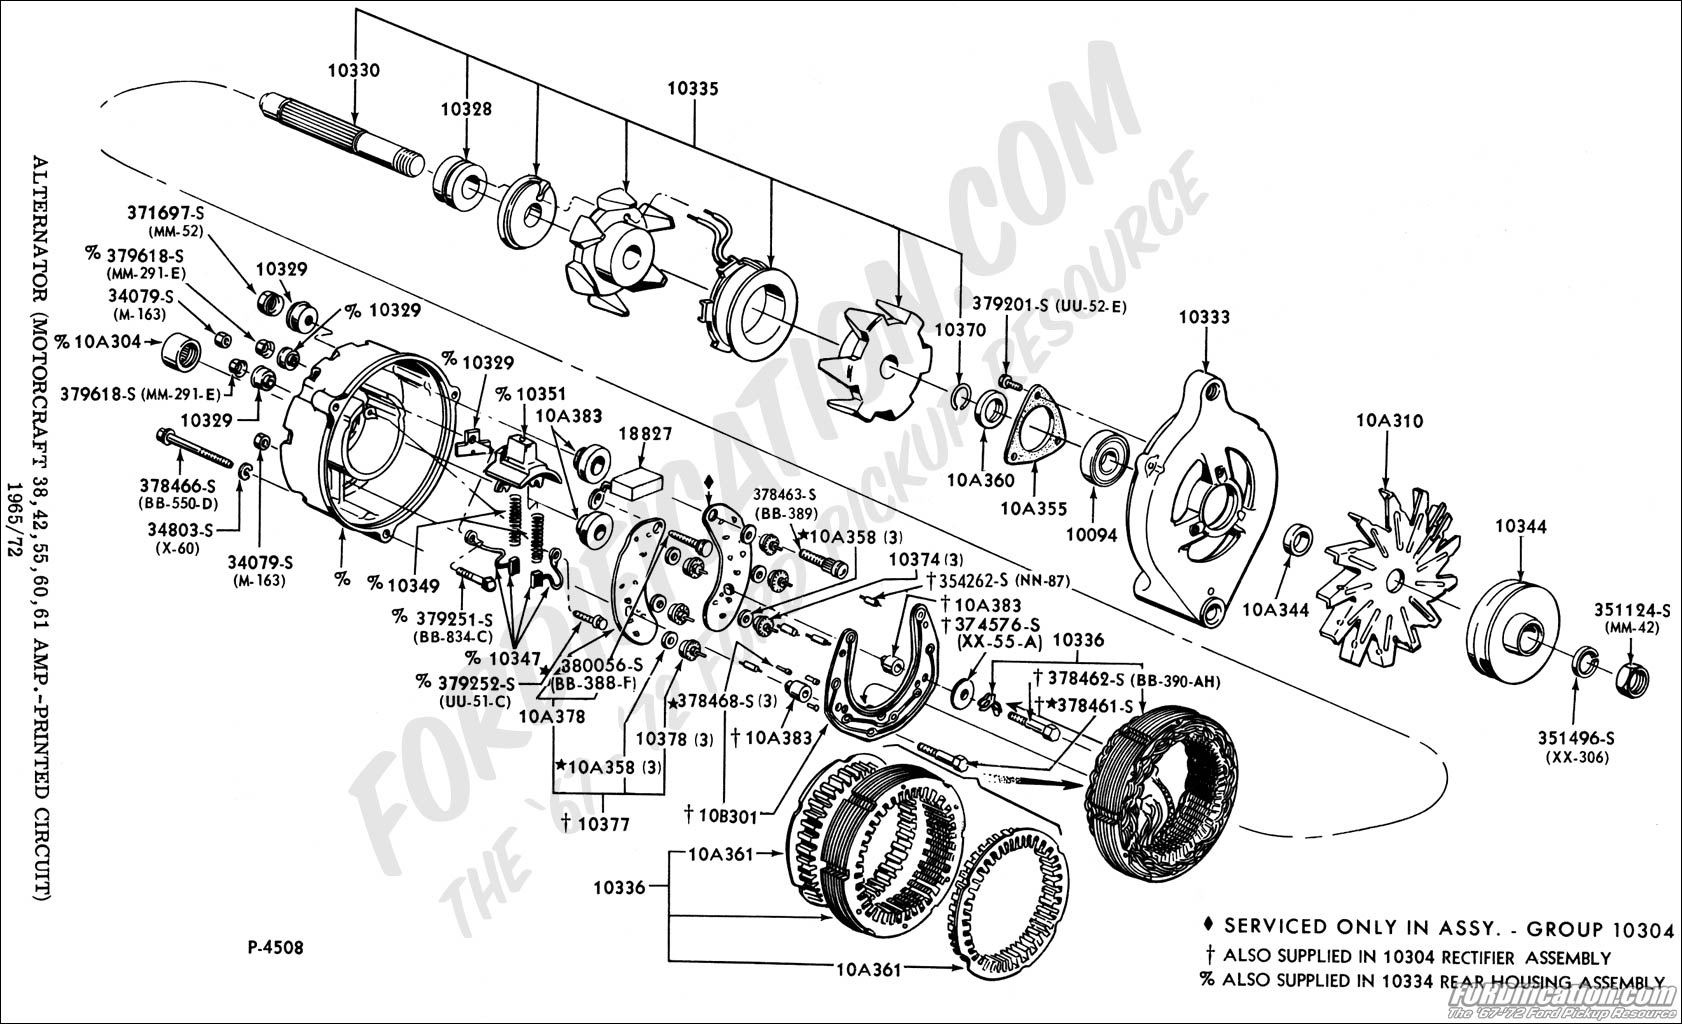 alternator01 ford truck technical drawings and schematics section i 85 Ford Alternator Wiring Diagram at edmiracle.co